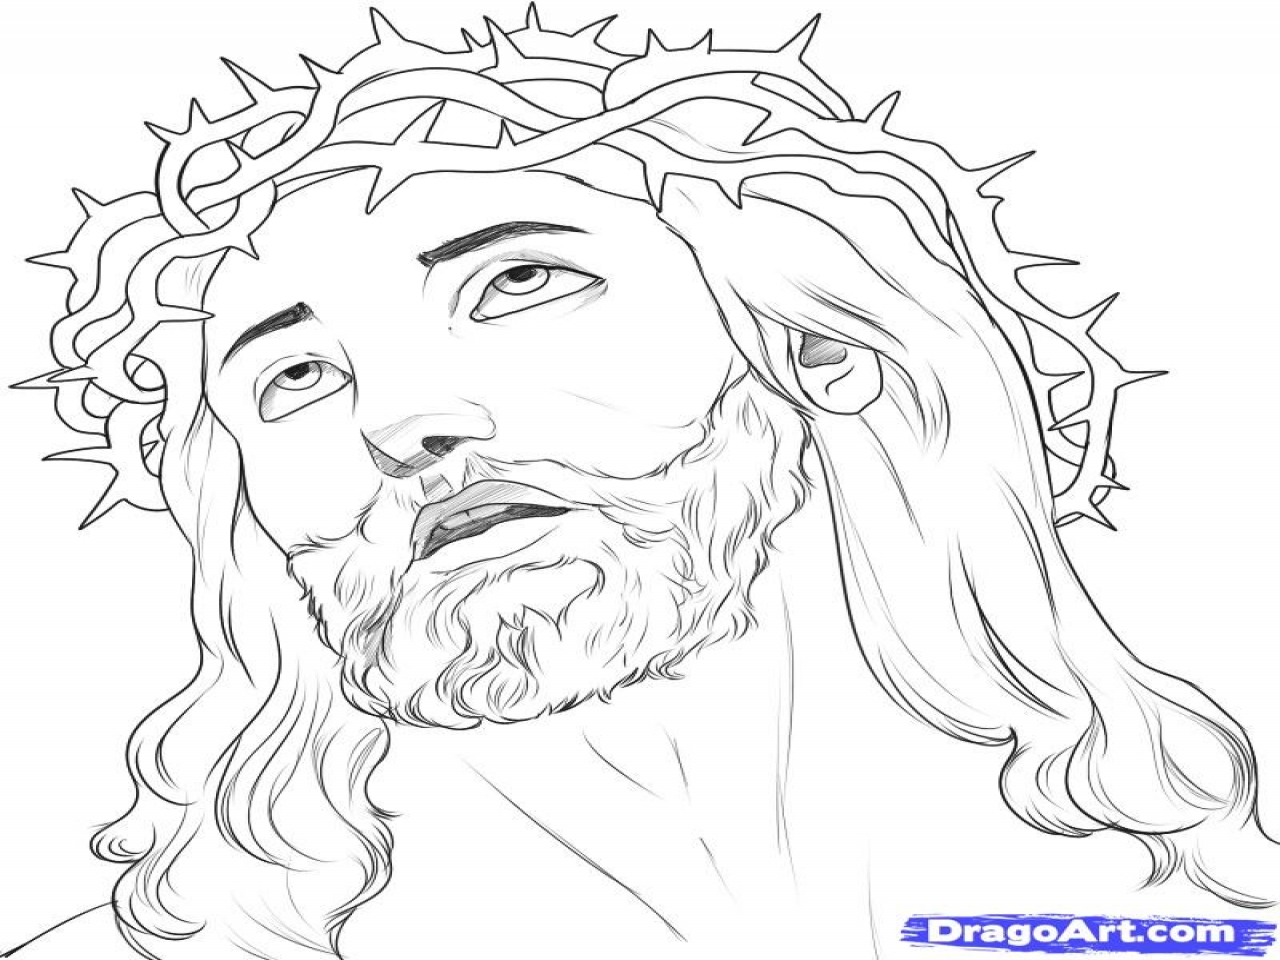 Jesus drawing at getdrawings free for personal use jesus 1280x960 jesus face outline coloring how to draw step by stars people altavistaventures Gallery